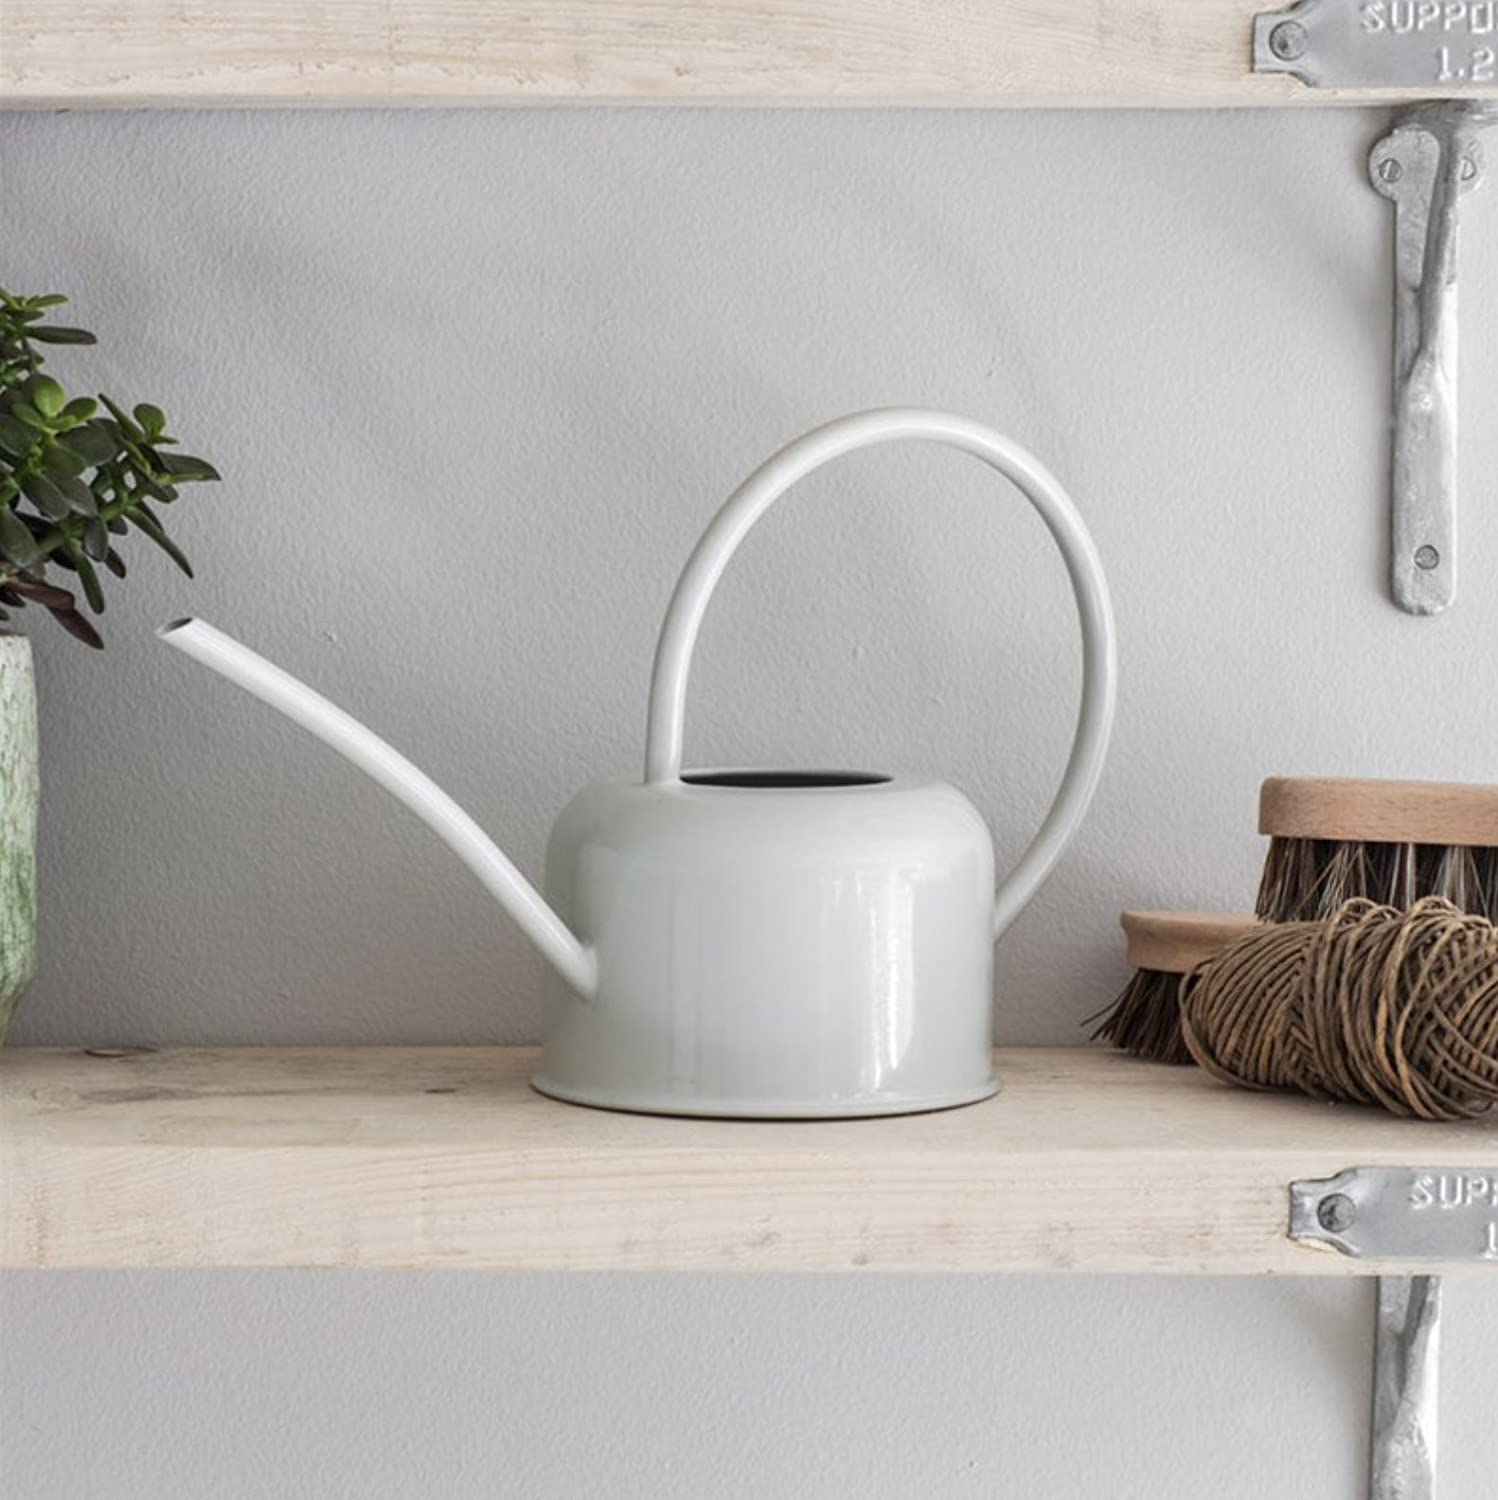 CKB LTD® Small 1.1L Indoor Watering Can - Chalk Coloured Galvanised Powder Coated Steel - For Houseplants Contemporary Metal Design With Narrow Spout And High Handle